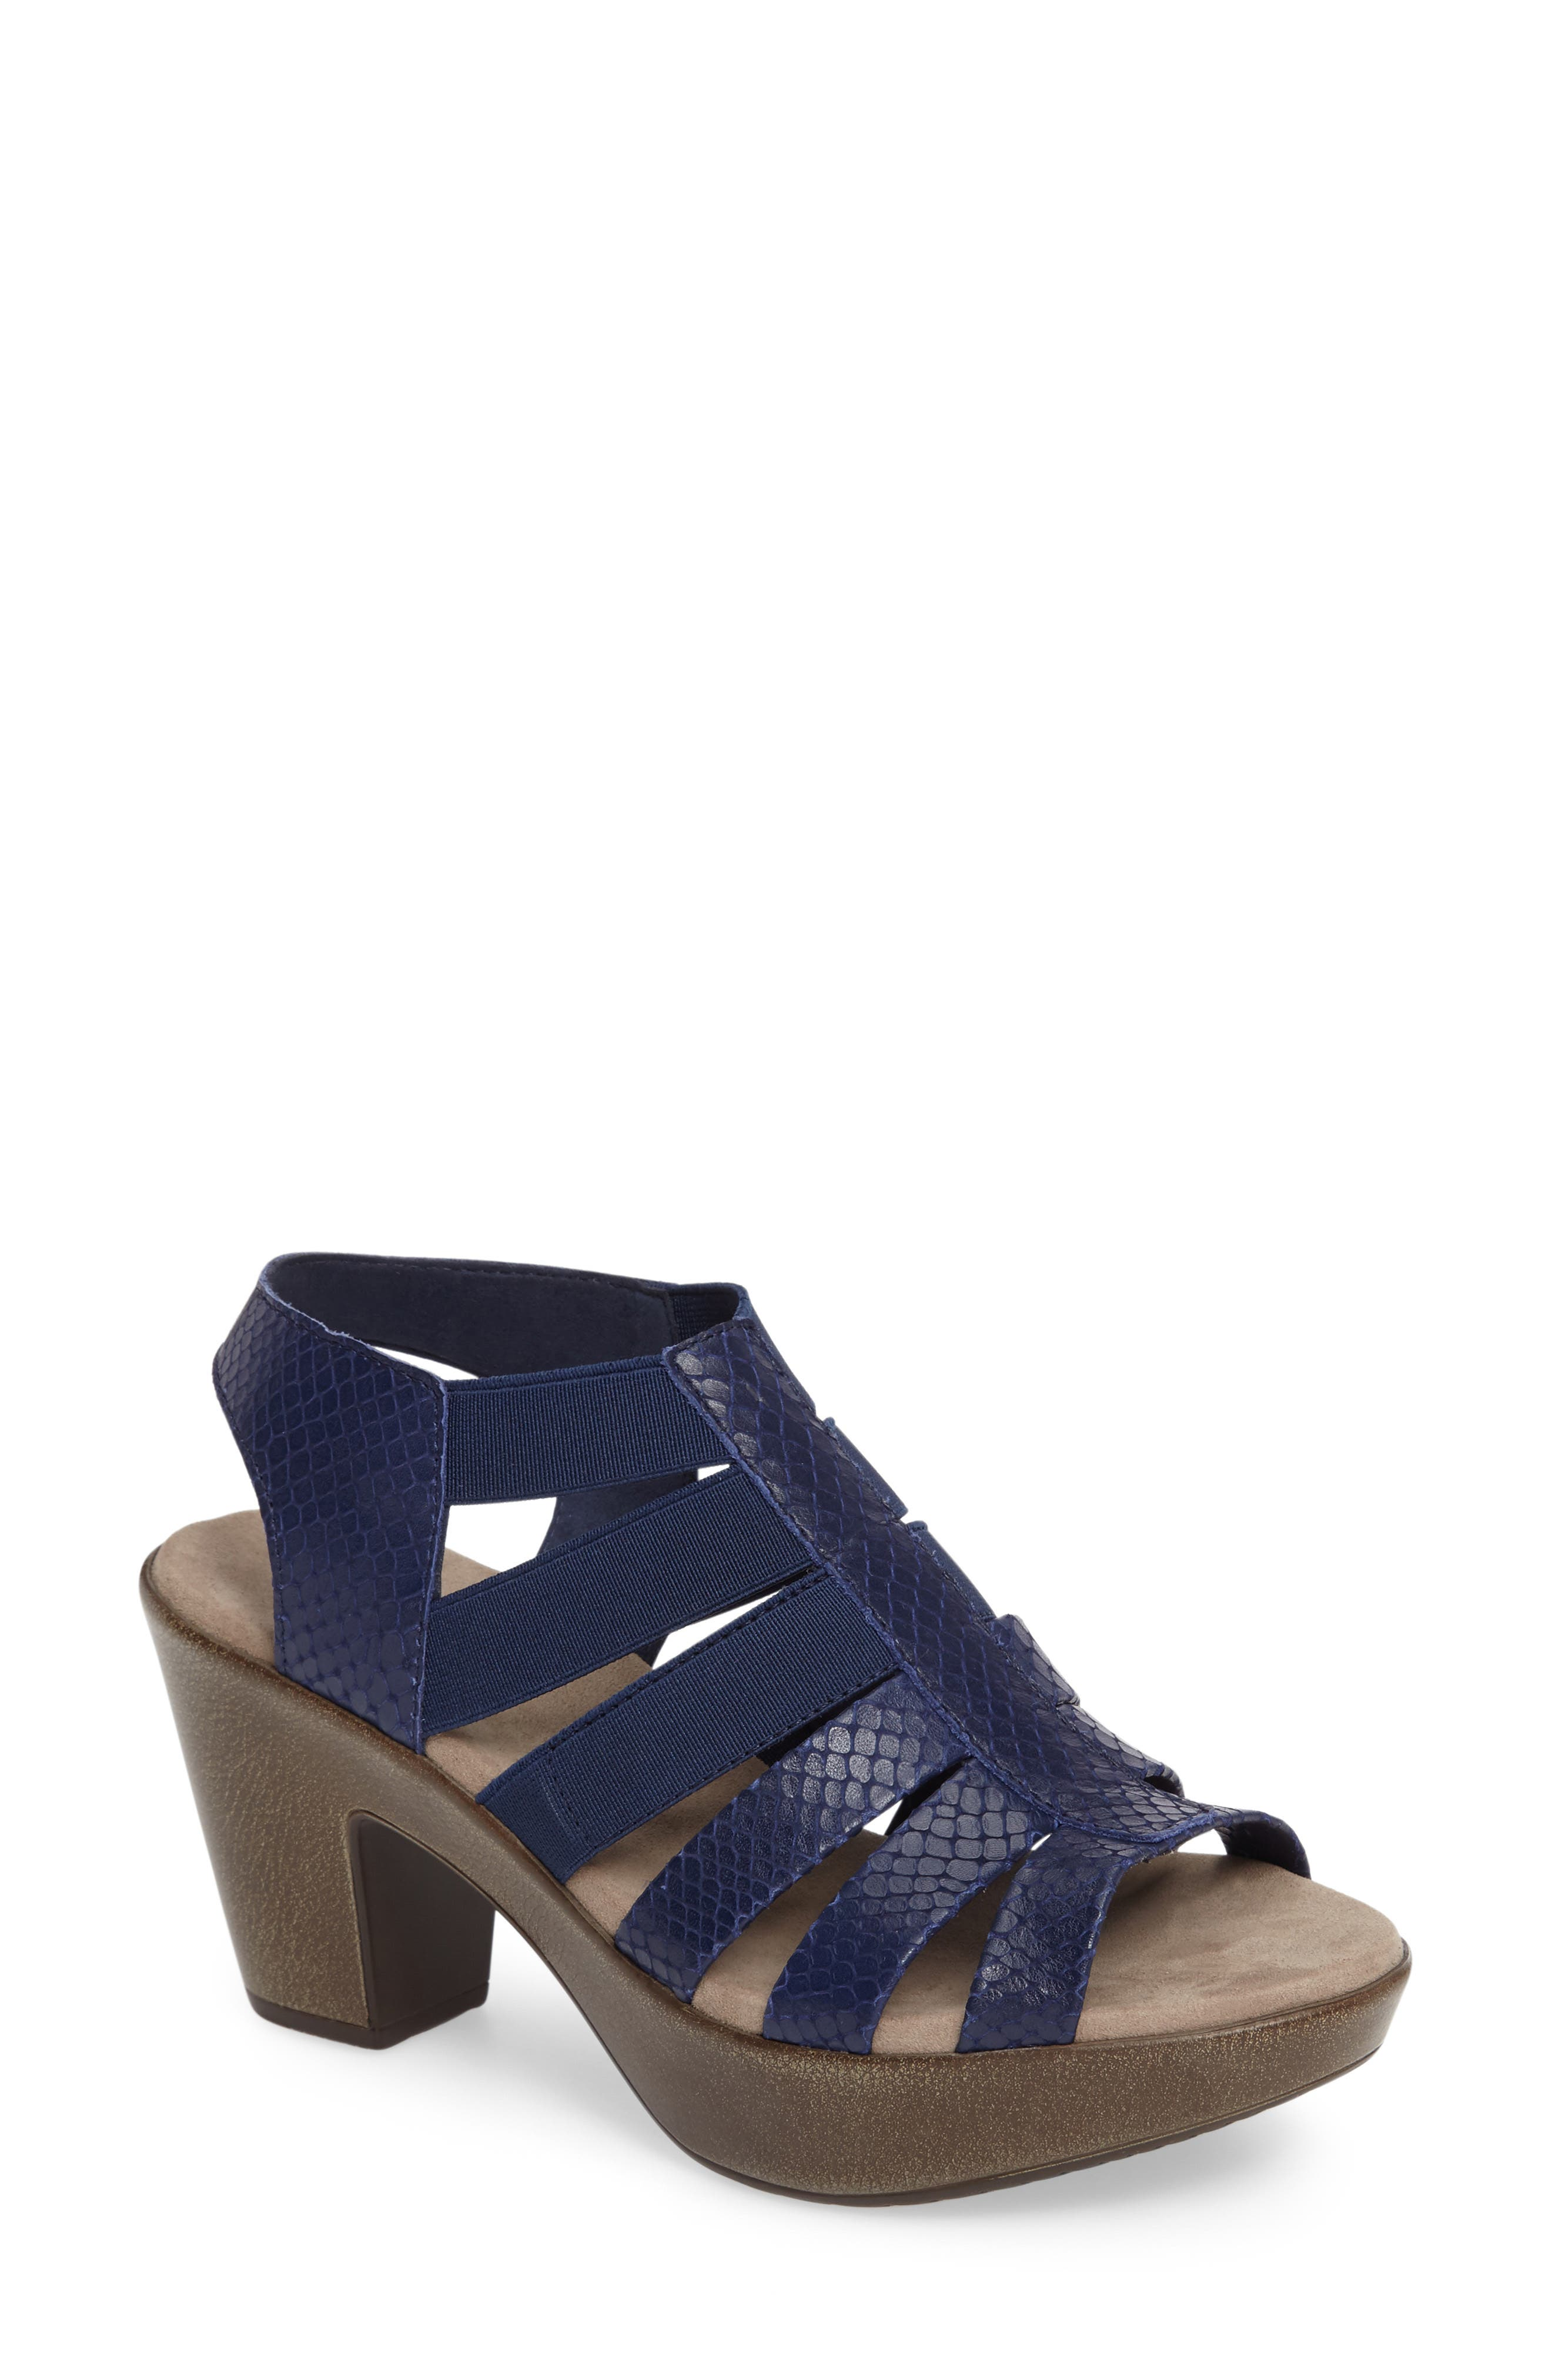 'Cookie' Slingback Sandal,                             Main thumbnail 1, color,                             Blue Leather